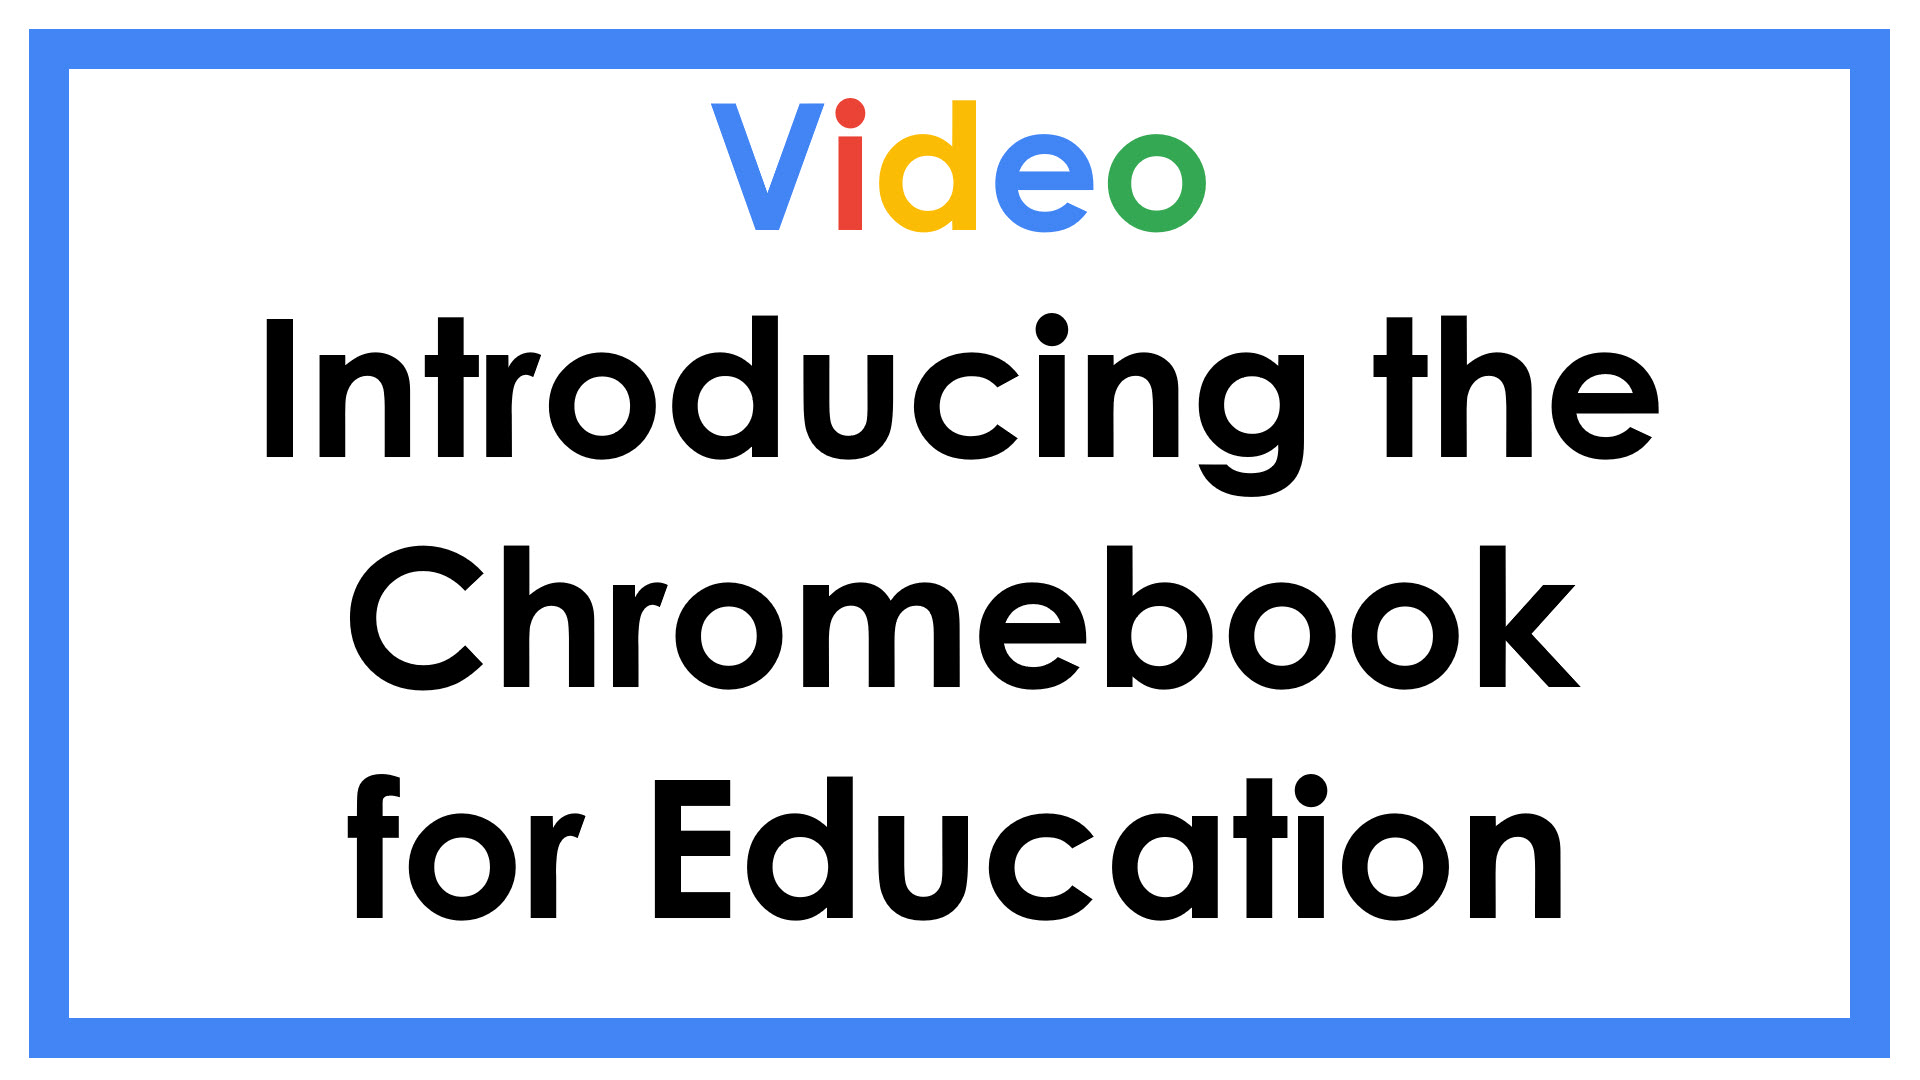 Introducing the Chromebook for Education